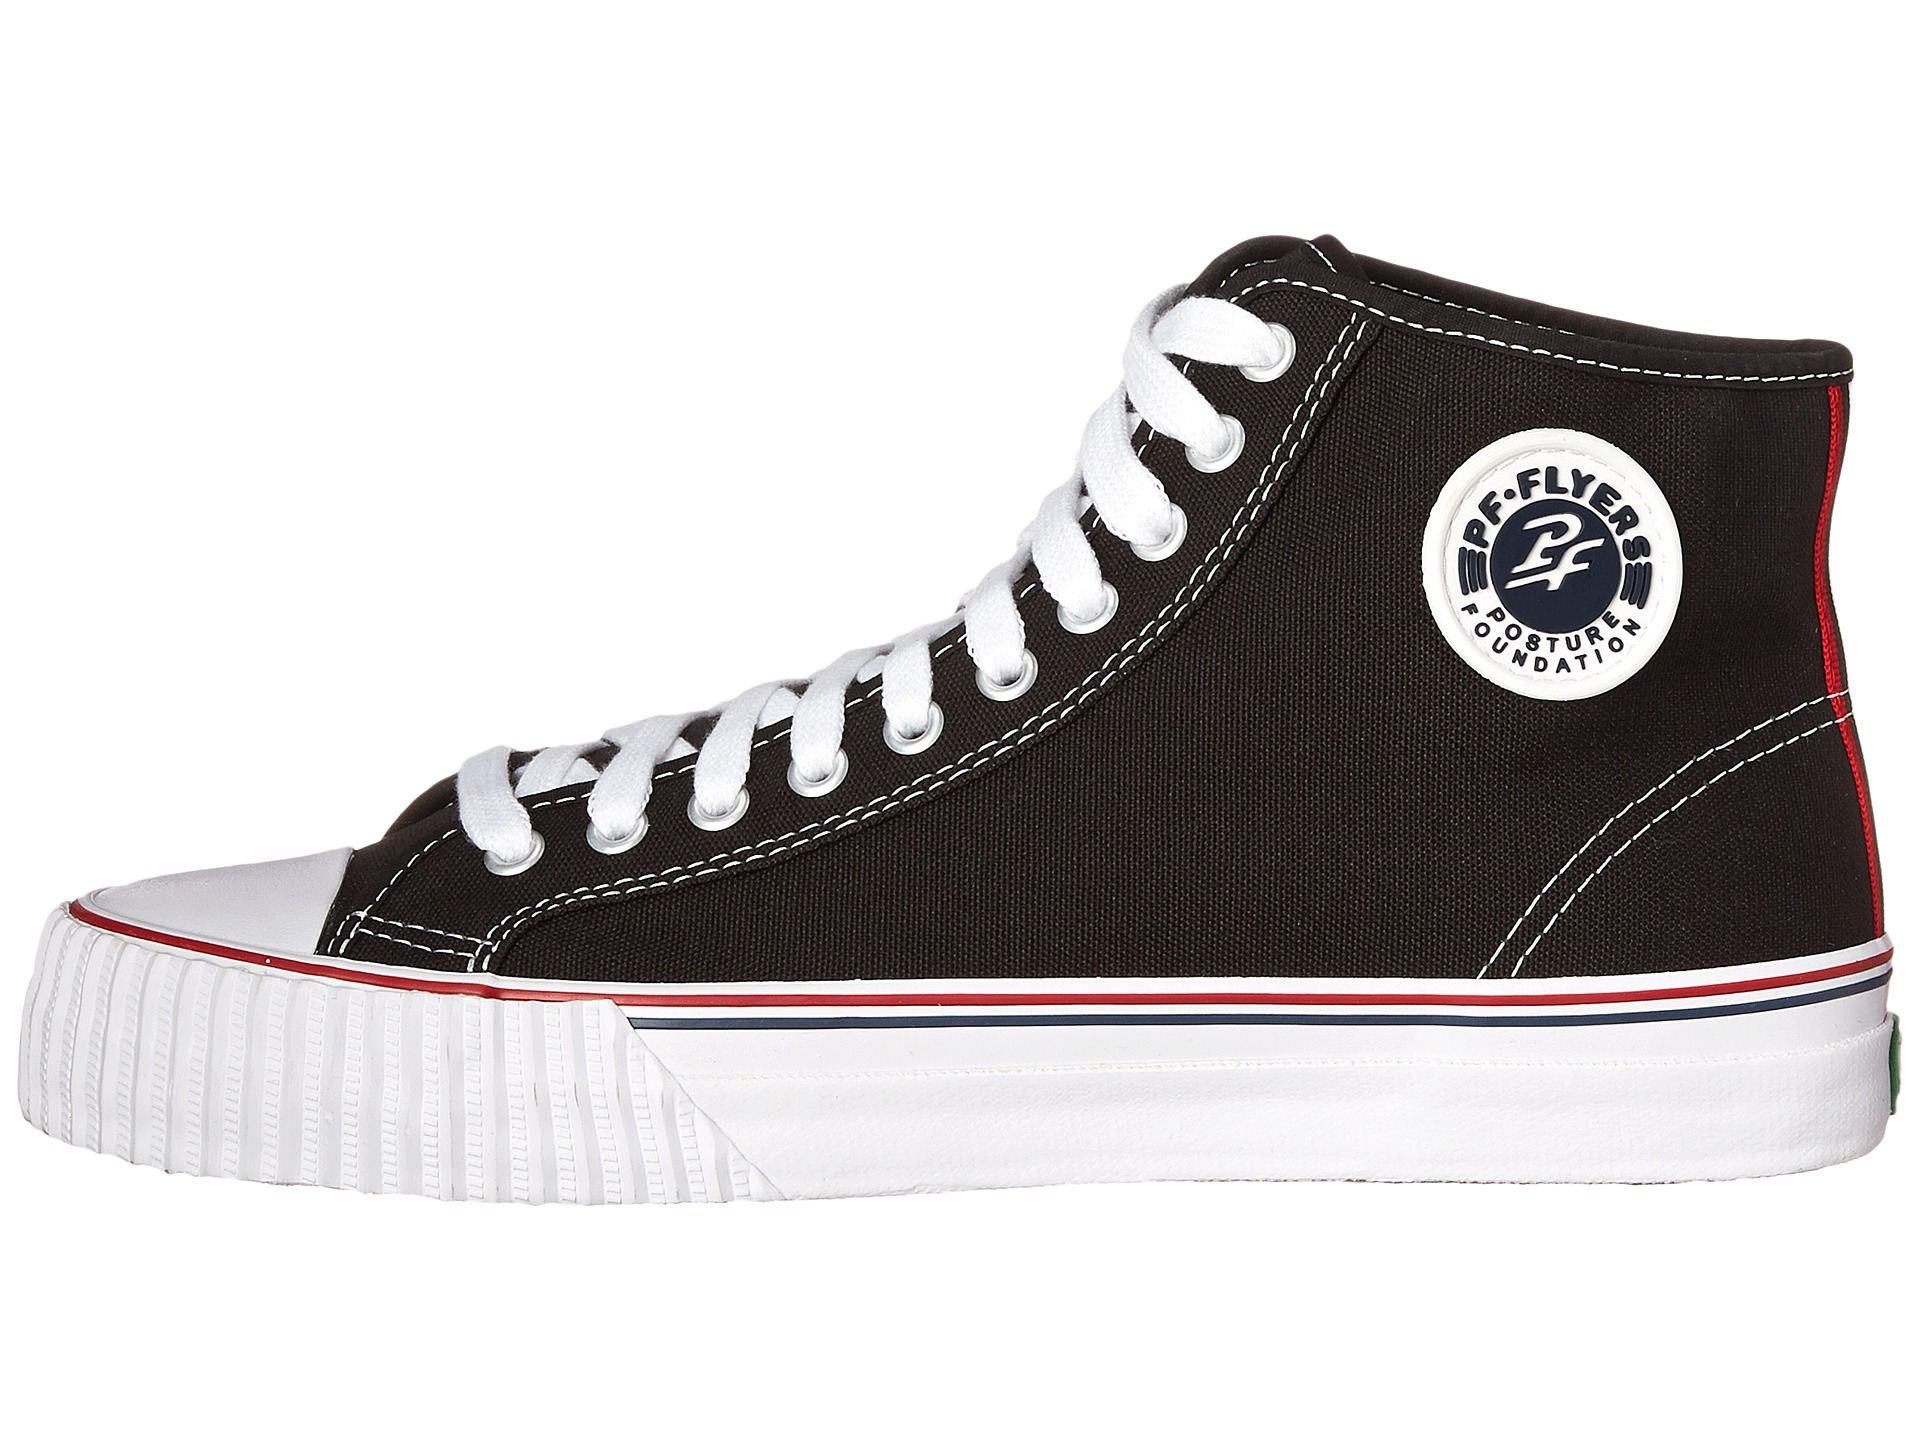 Pf Flyers Basketball Shoes